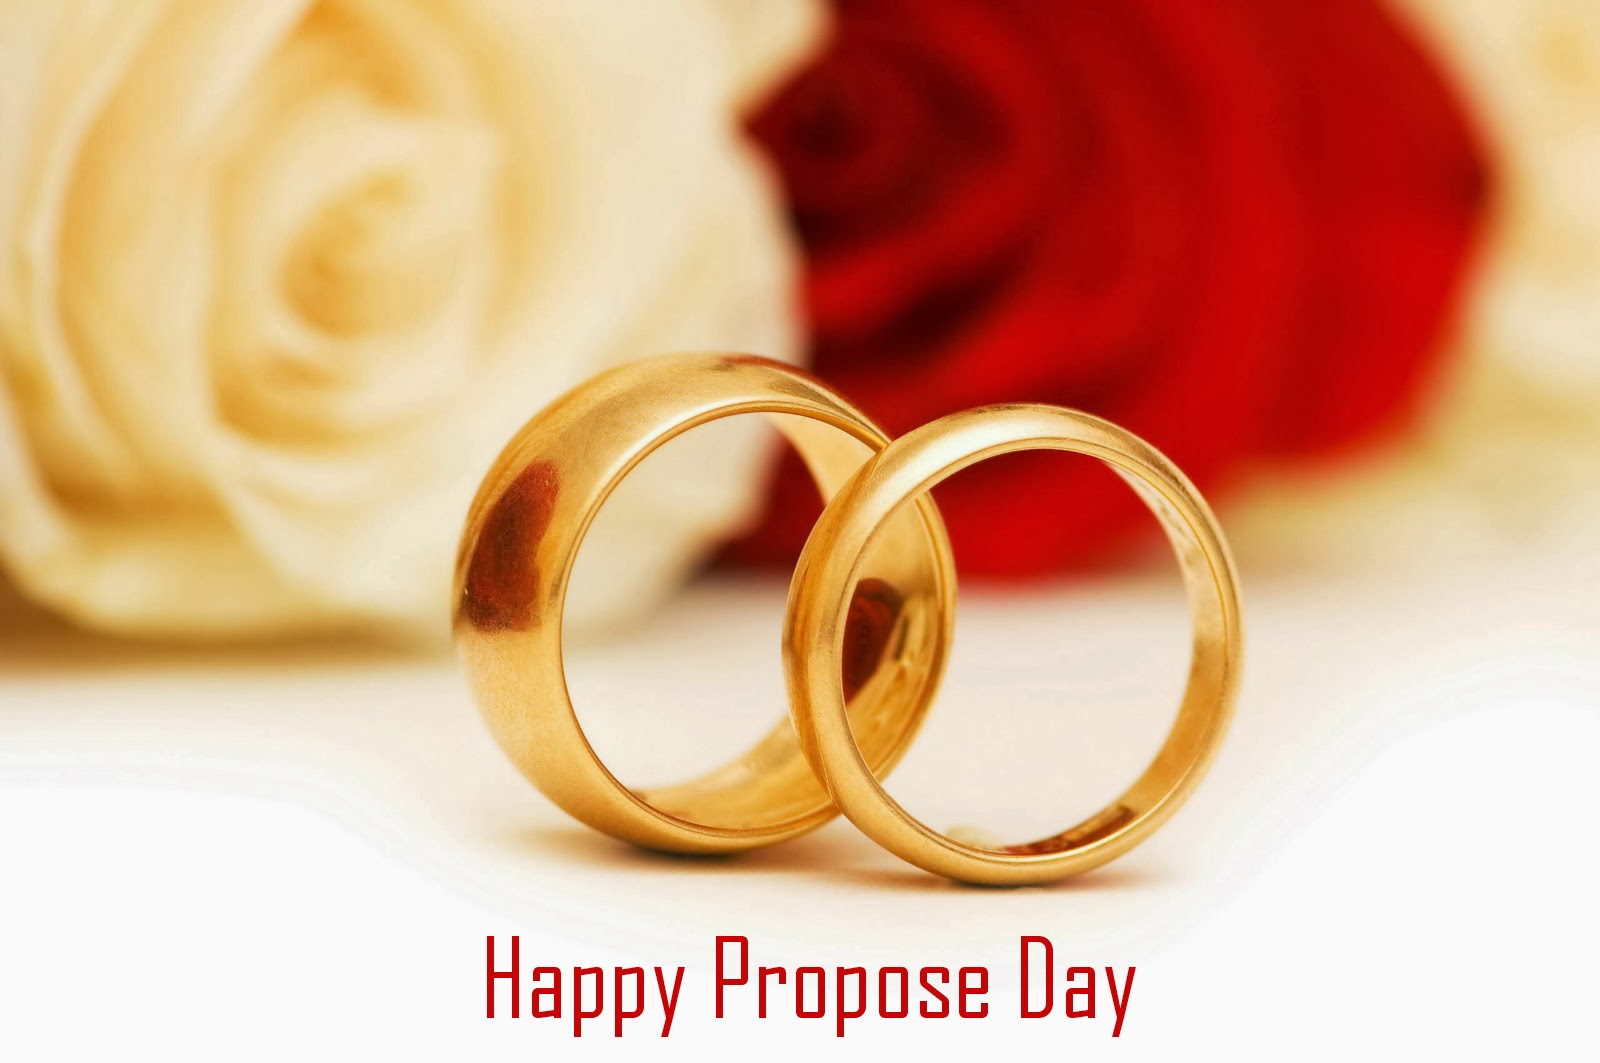 Top 20 Propose Day Images for Whatsapp